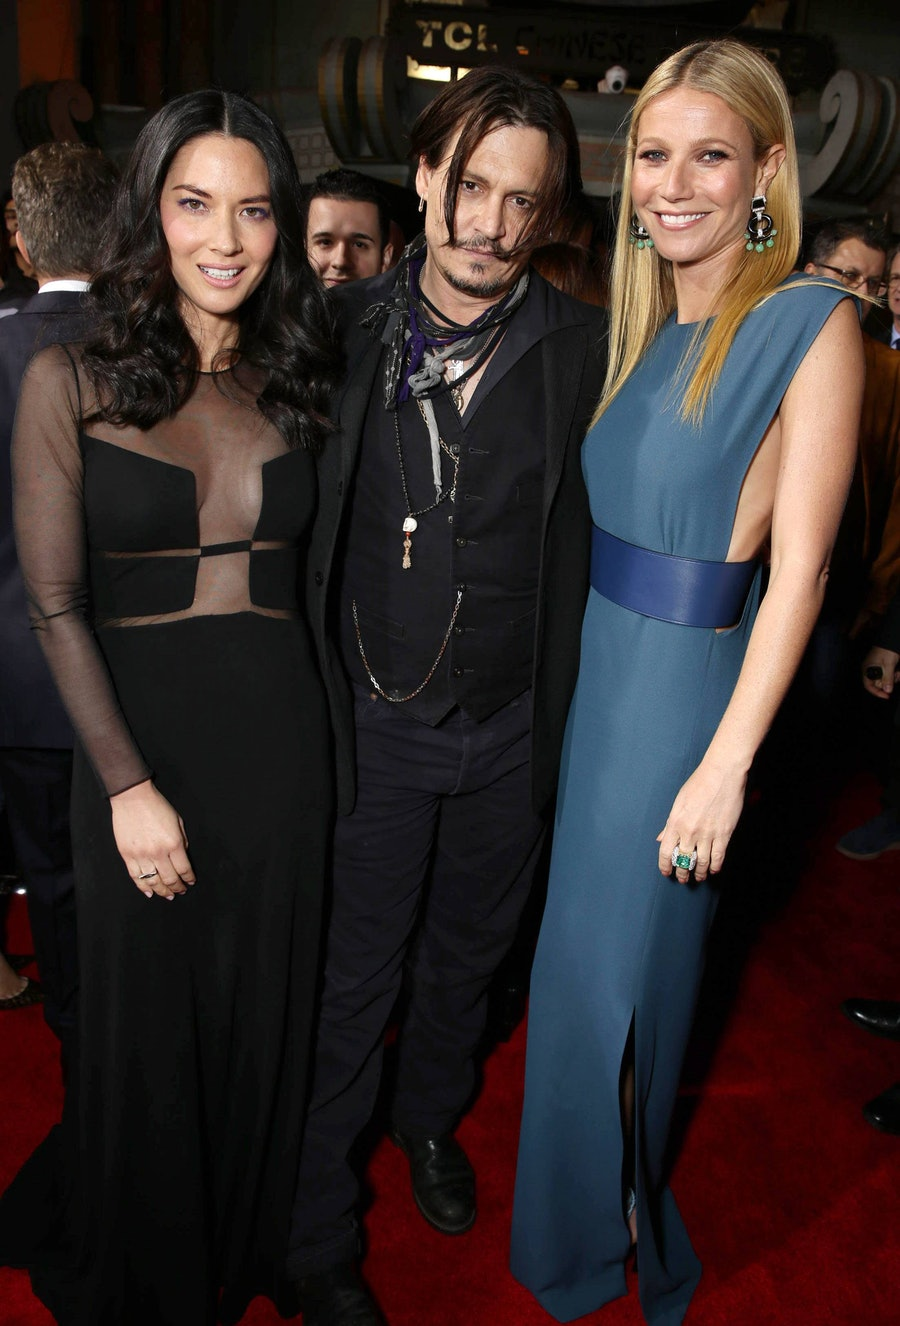 Olivia Munn, Johnny Depp, and Gwyneth Paltrow